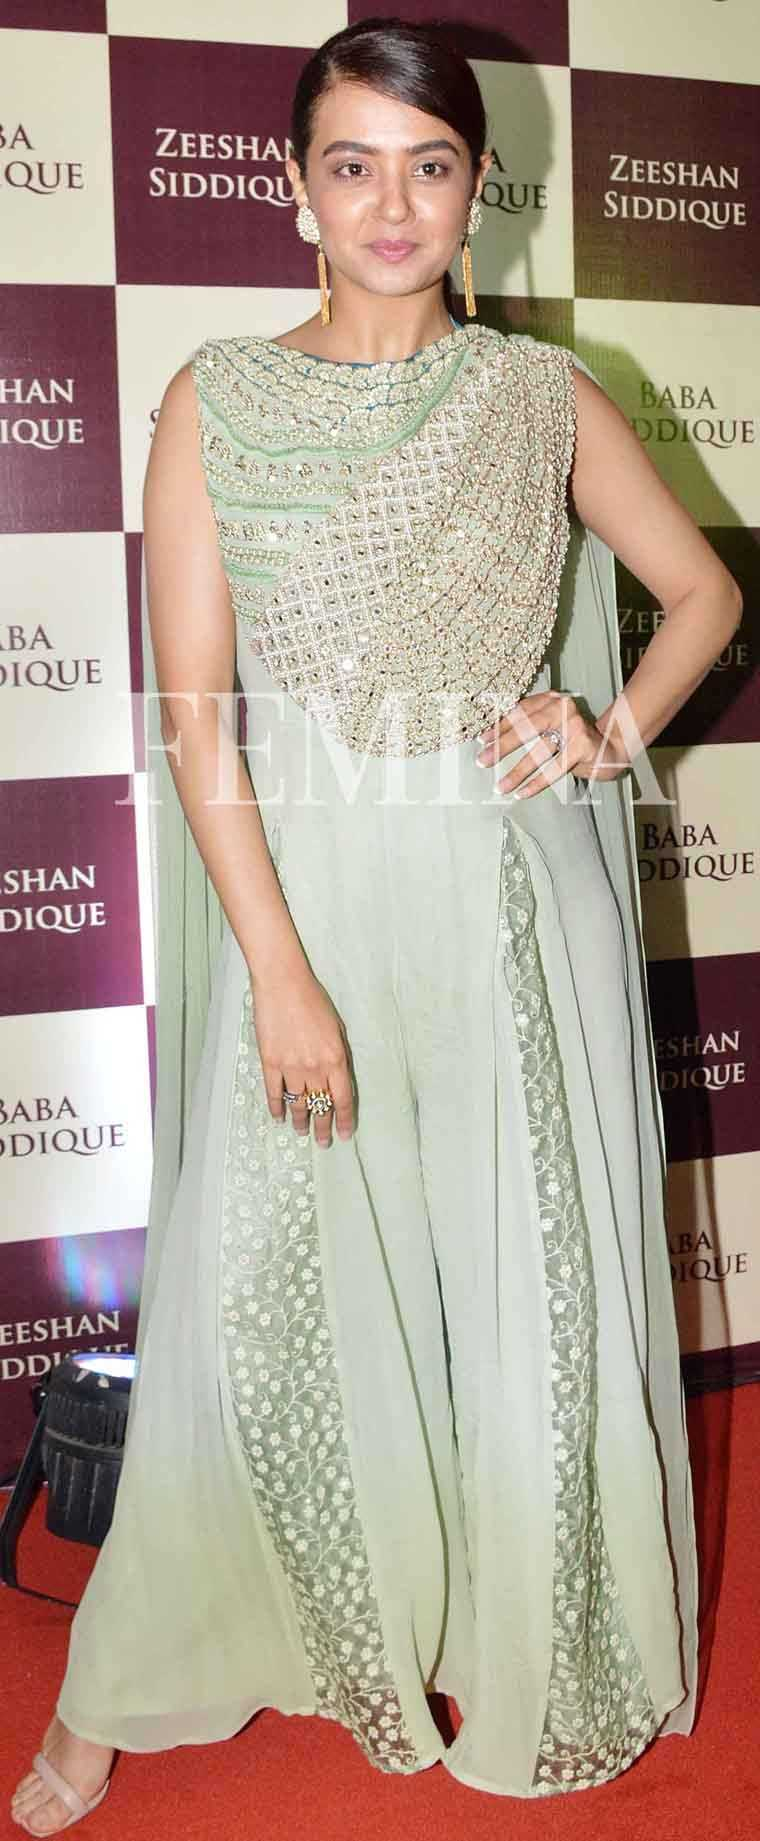 SURVEEN CHAWLA Surveen stepped out for a party in a Ridhima Bhasin jumpsuit. She chose a pair of statement earrings from Aquamarine and nude sandals to round off her look.